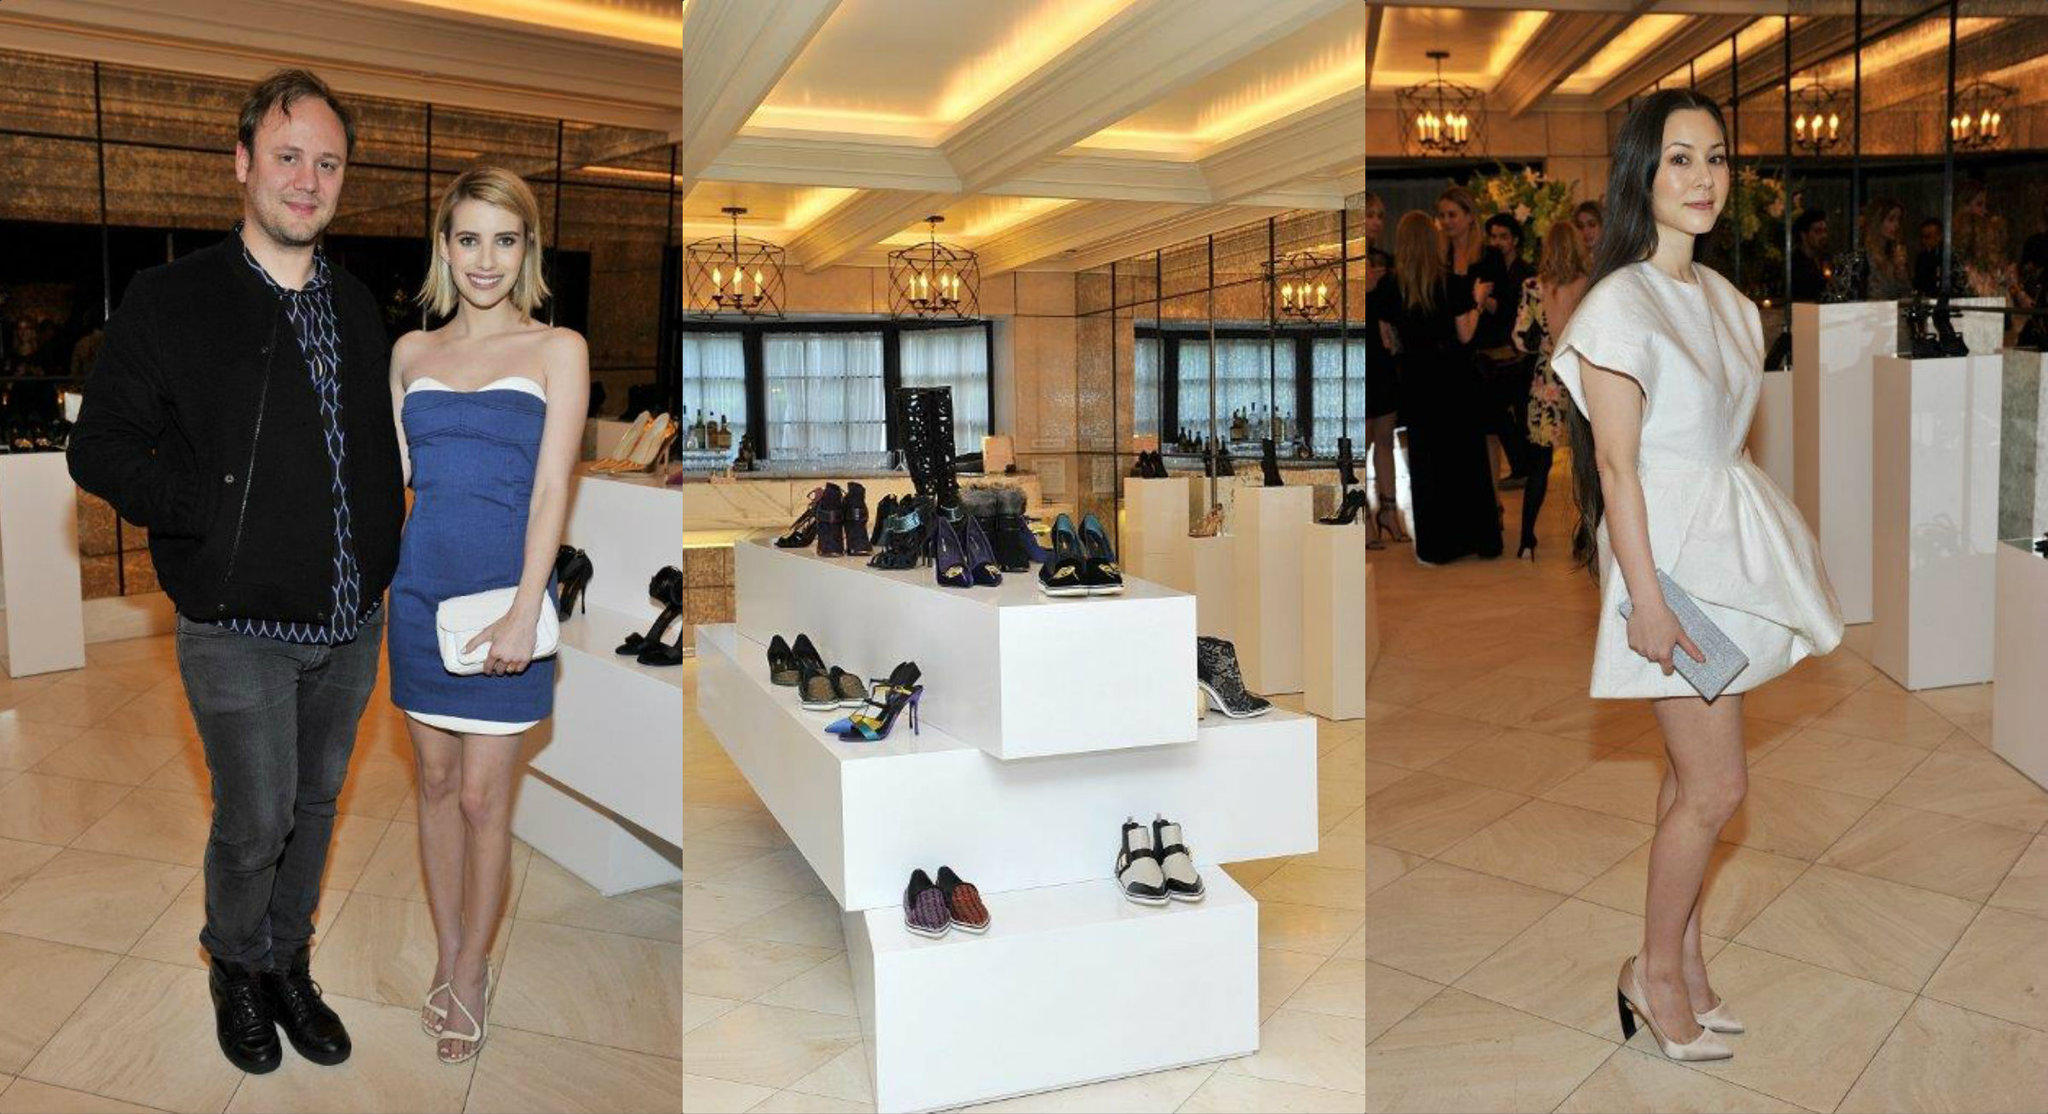 Emma Roberts and Jake Shears co-hosted a dinner in honor of Nicholas Kirkwood at Hotel Bel-Air in Los Angeles. From left, shoe designer Nicholas Kirkwood and Emma Roberts; selections from Kirkwood's fall 2014 collection; China Chow.